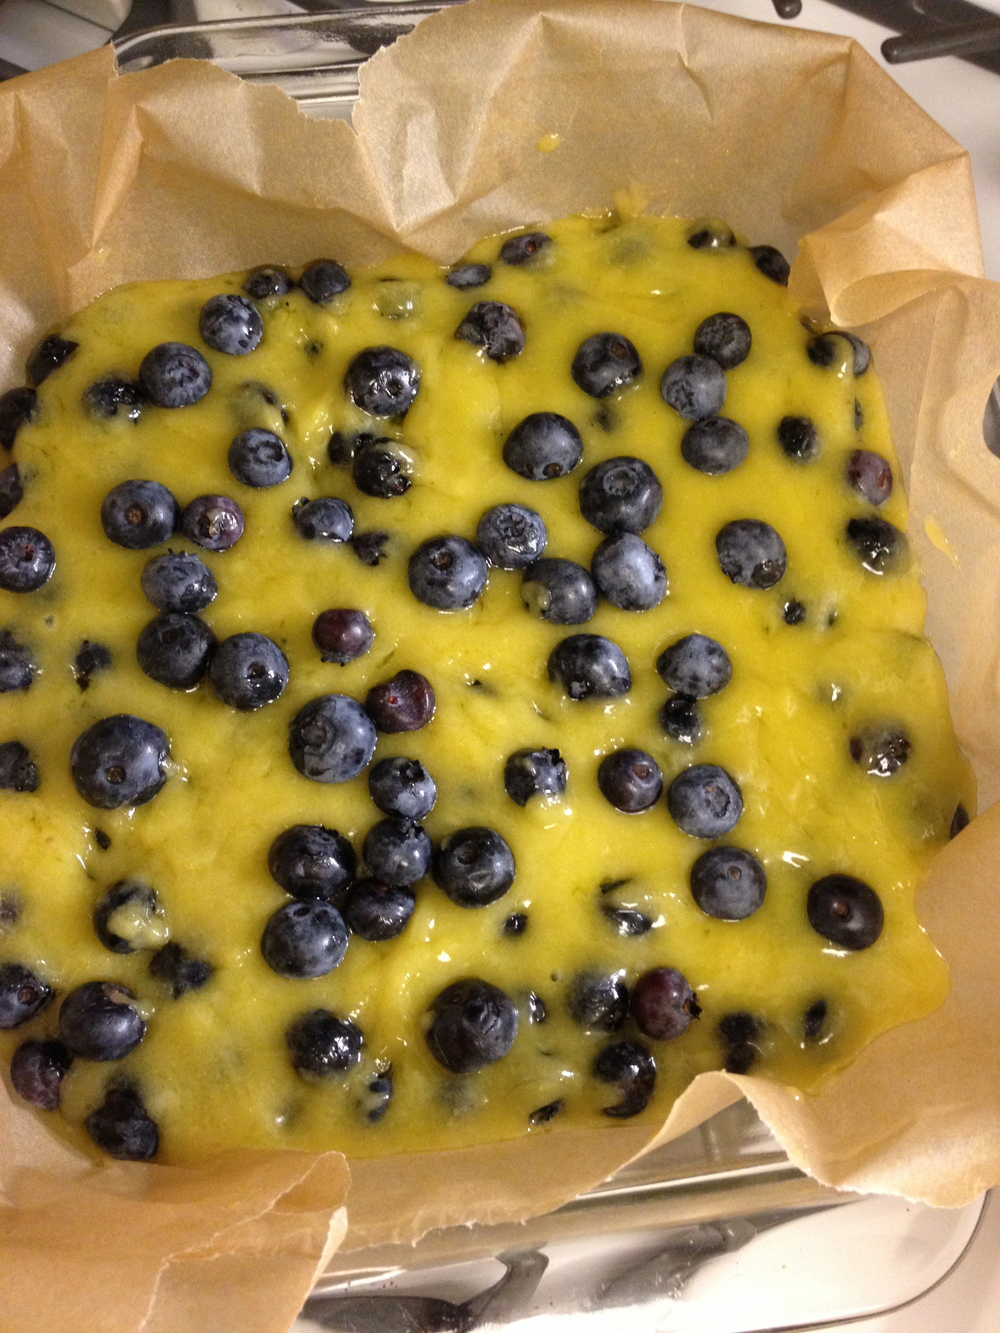 More batter and more blueberries.